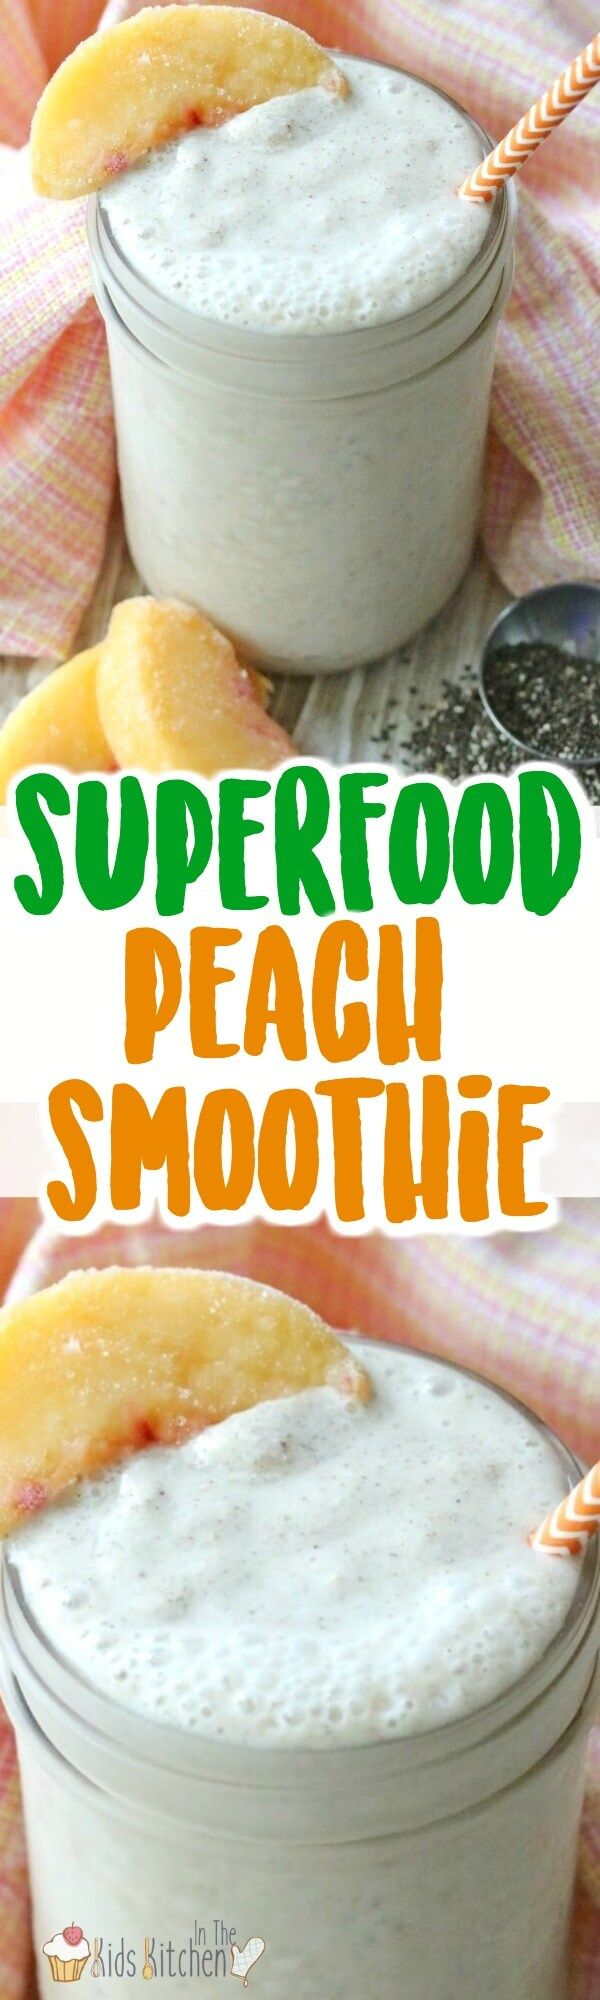 Start the day with a superfood kick! This healthy peach smoothie is full of goodies and easy to make! Vitamins, calcium, and more! (Bonus: it's kid-approved)!) #smoothies #healthyfood